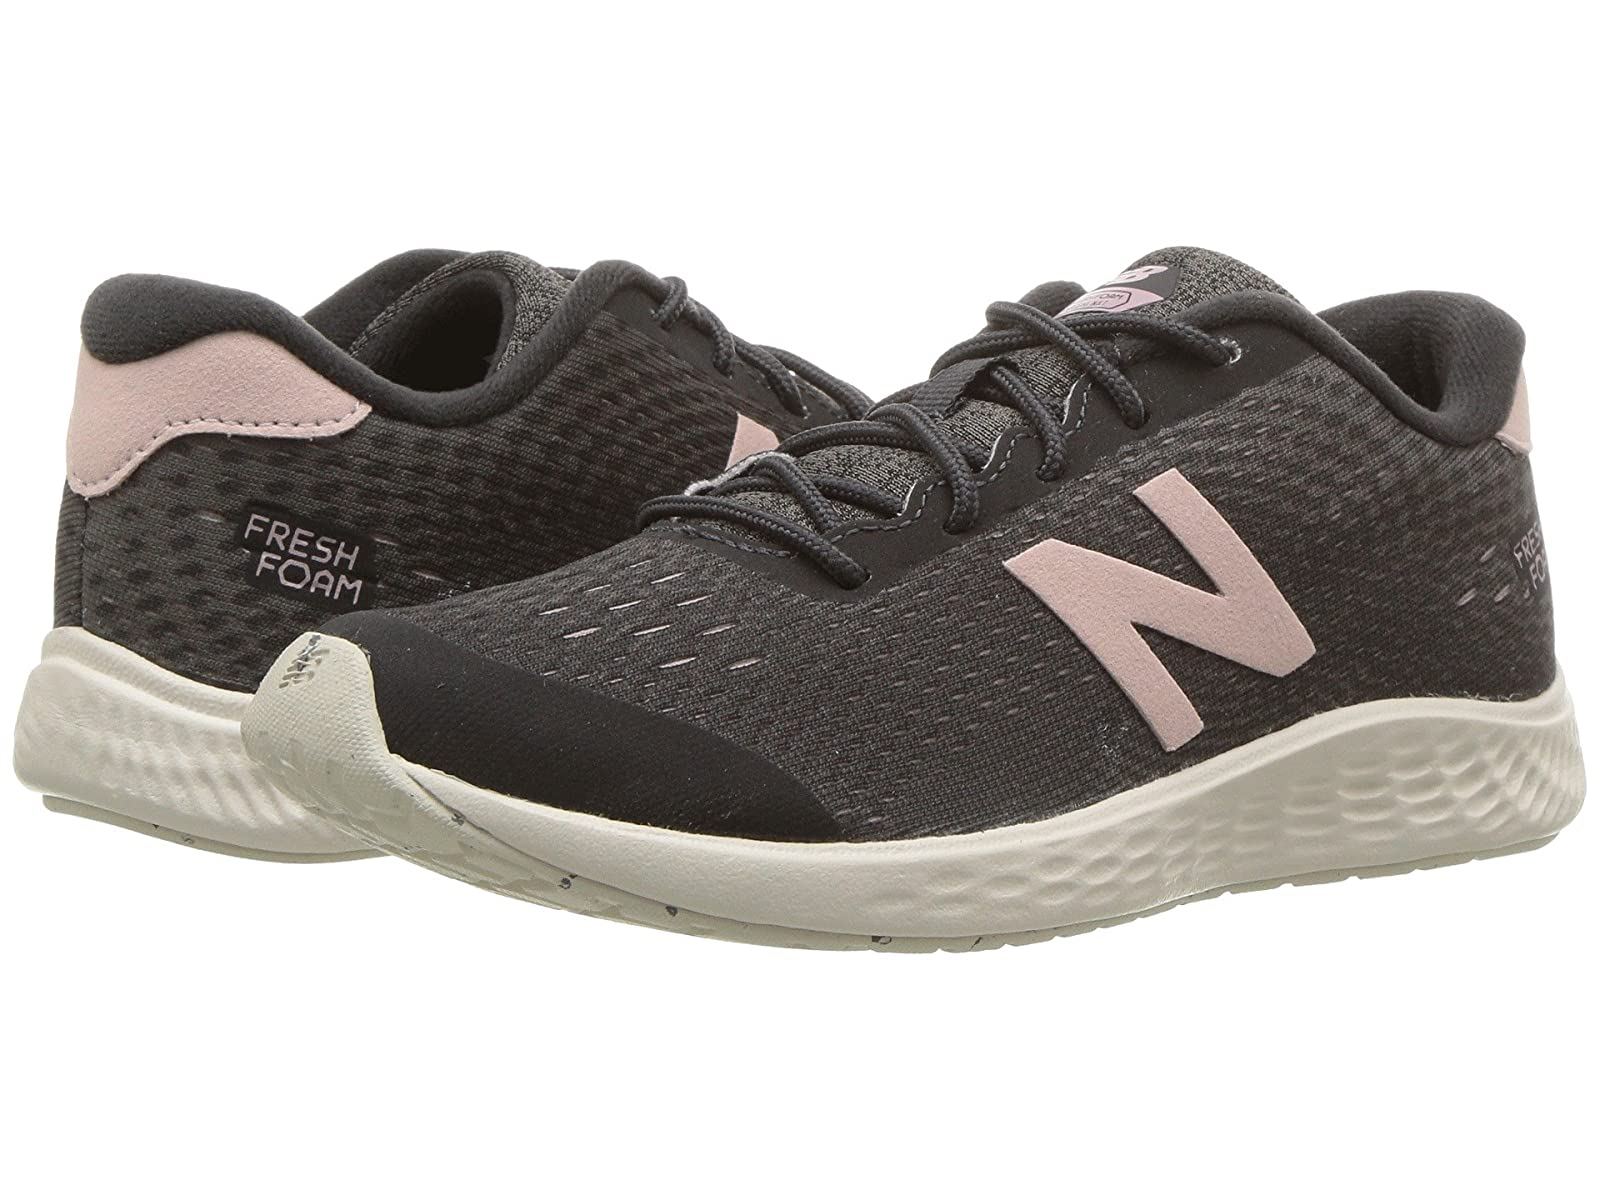 New Balance Kids Fresh Foam Arishi NXT (Little Kid/Big Kid)Atmospheric grades have affordable shoes